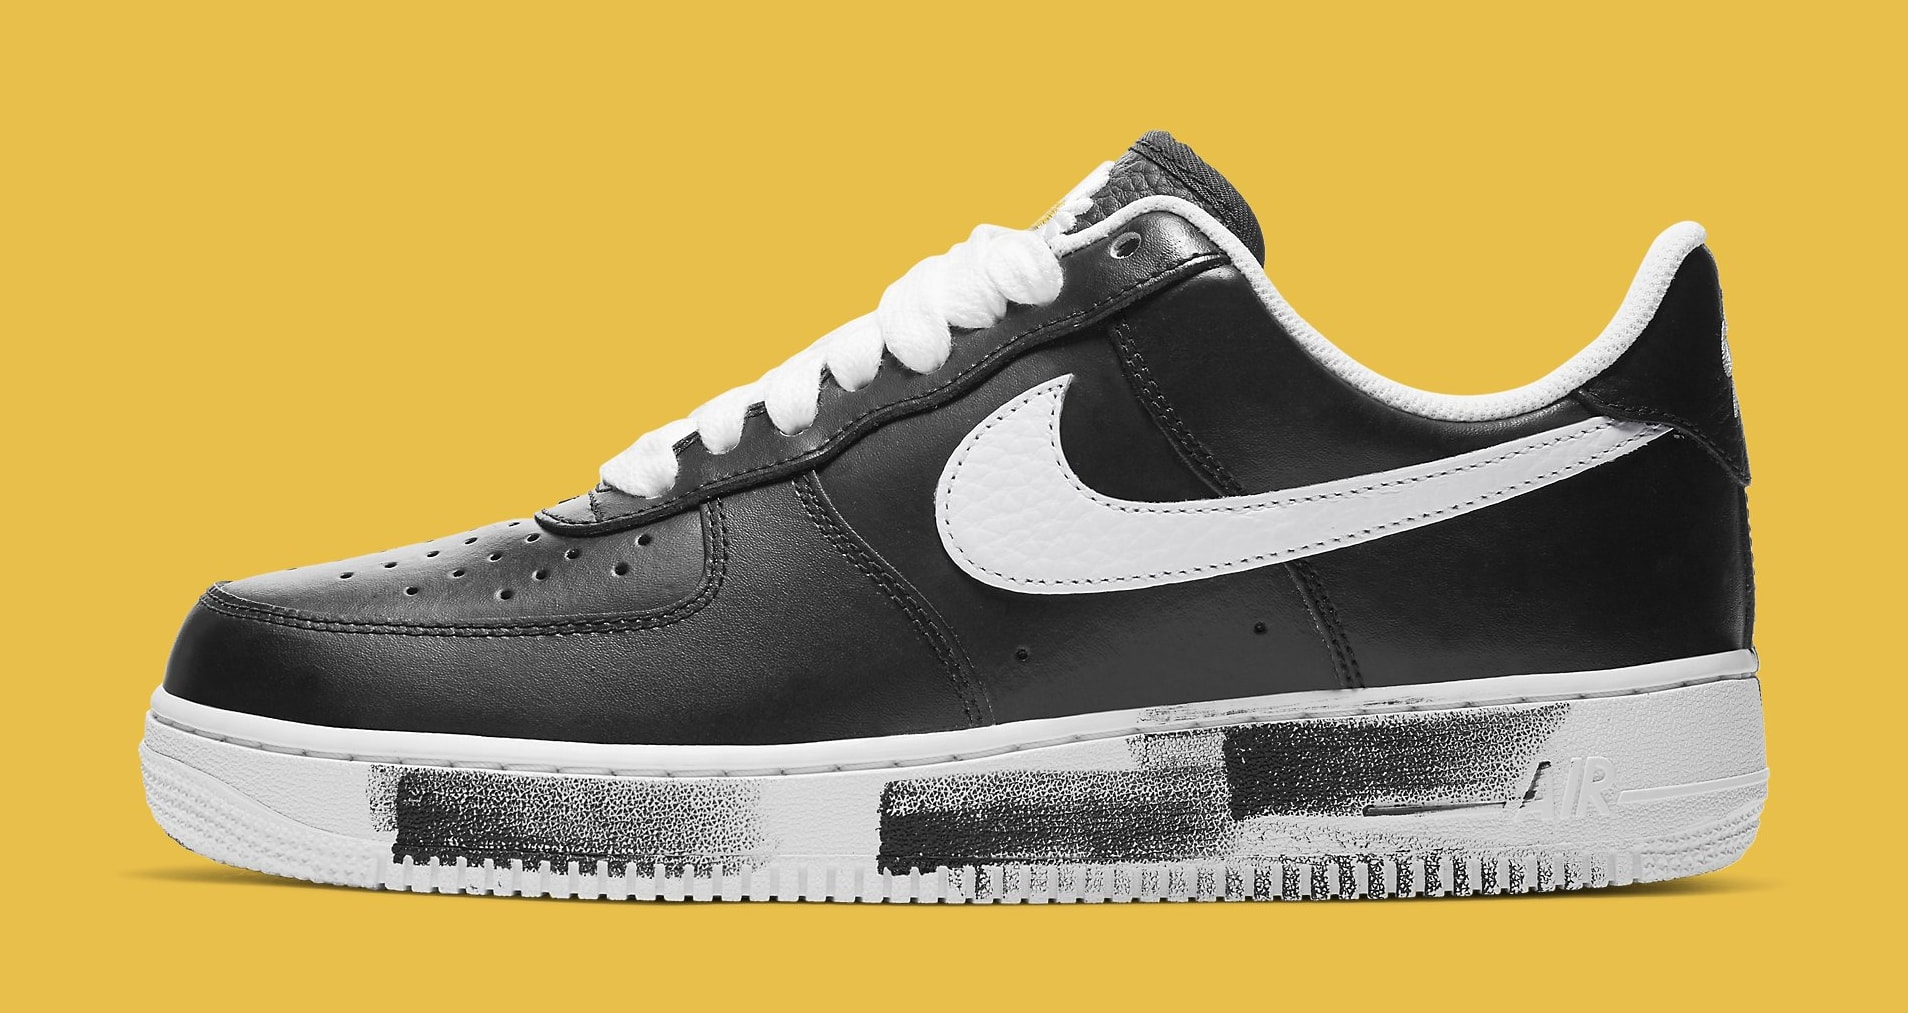 G Dragon x Nike Air Force 1 Low 'Para noise' Release Date